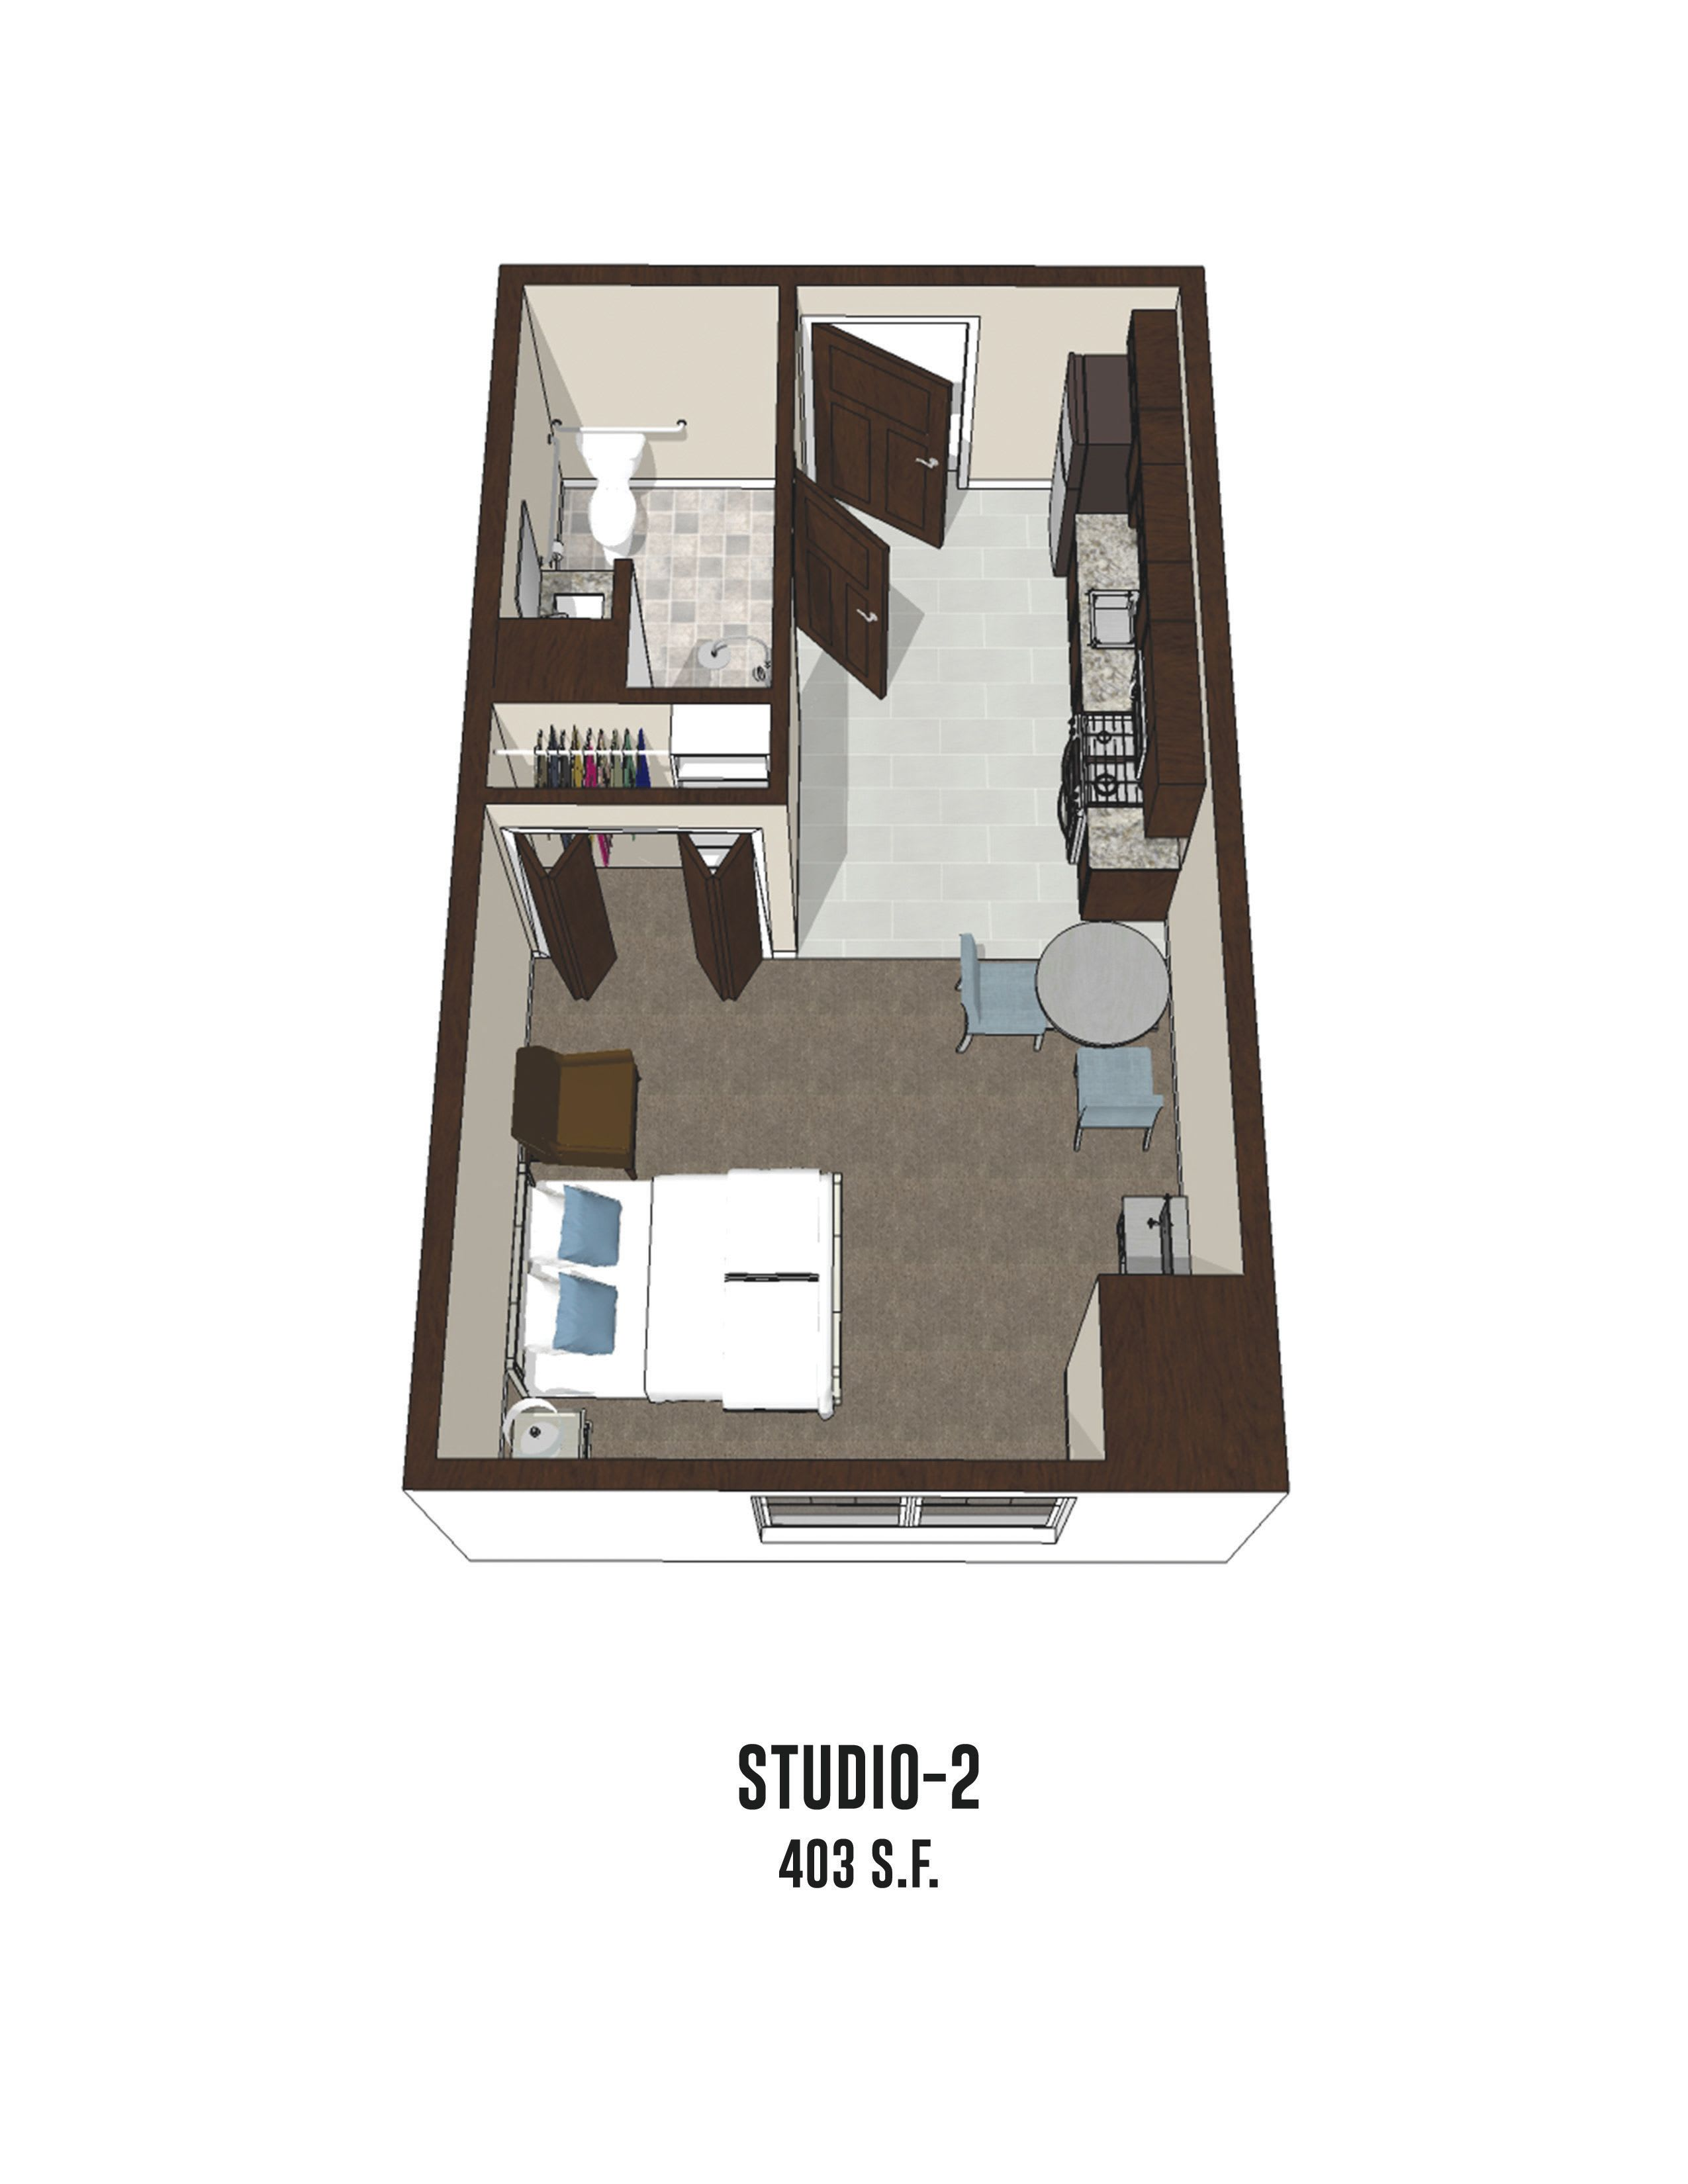 Independent living Studio 2 is 403 square feet at Byron Center in Byron Center, Michigan.